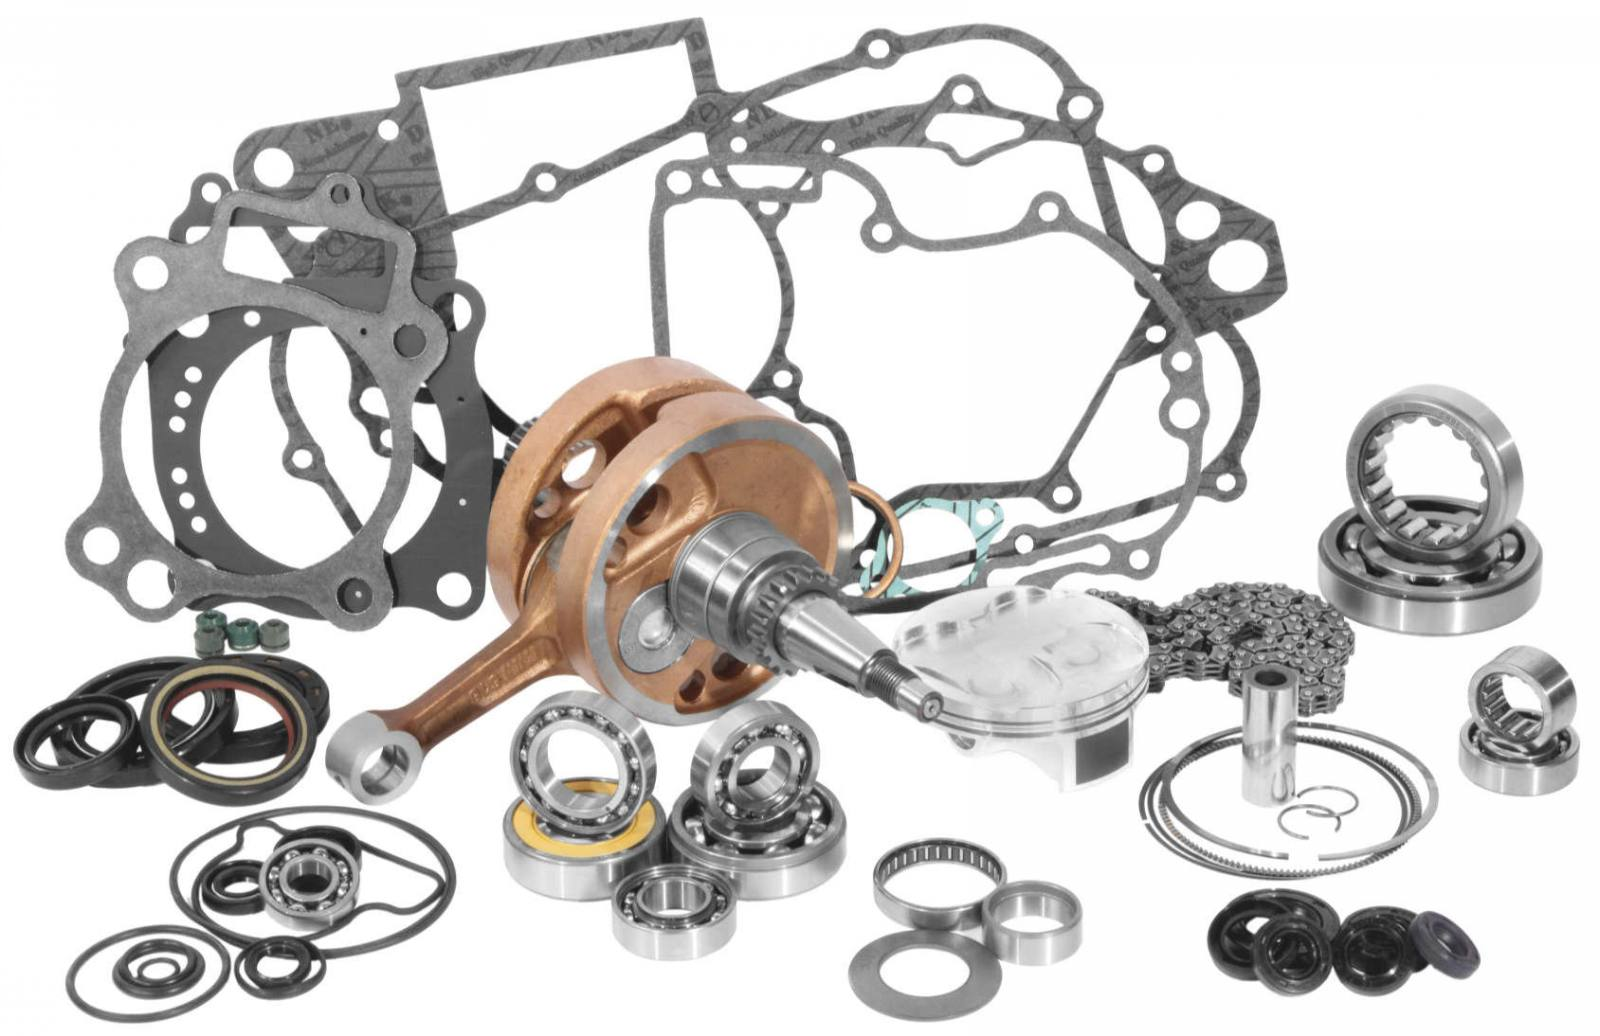 Complete Engine Rebuild Kit In A Box For Sale World Of Powersports Kawasaki Kx250 Wiring Harness Decatur 800 548 7218